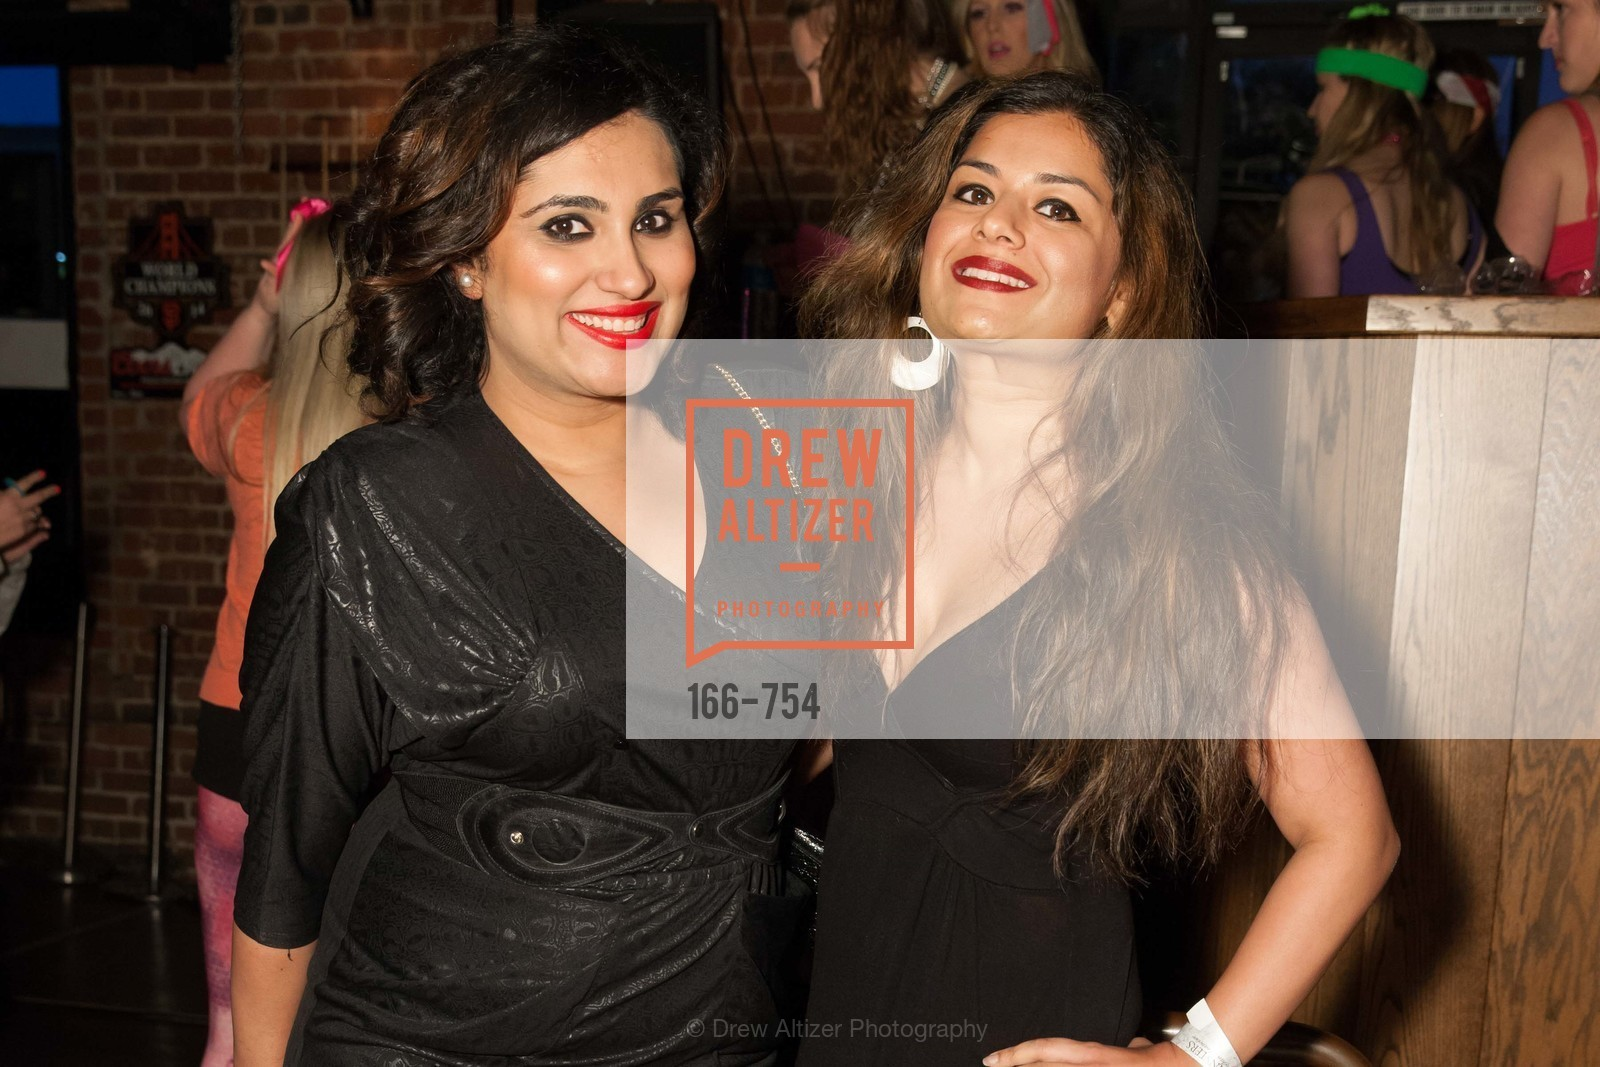 Teesta Kaur, Priya Saiprasad, SPINSTERS OF SAN FRANCISCO Party Like It's 1985 Charity Party, US, Fort One Bar & Lounge. 2801 Leavenworth St, May 30th, 2015,Drew Altizer, Drew Altizer Photography, full-service agency, private events, San Francisco photographer, photographer california